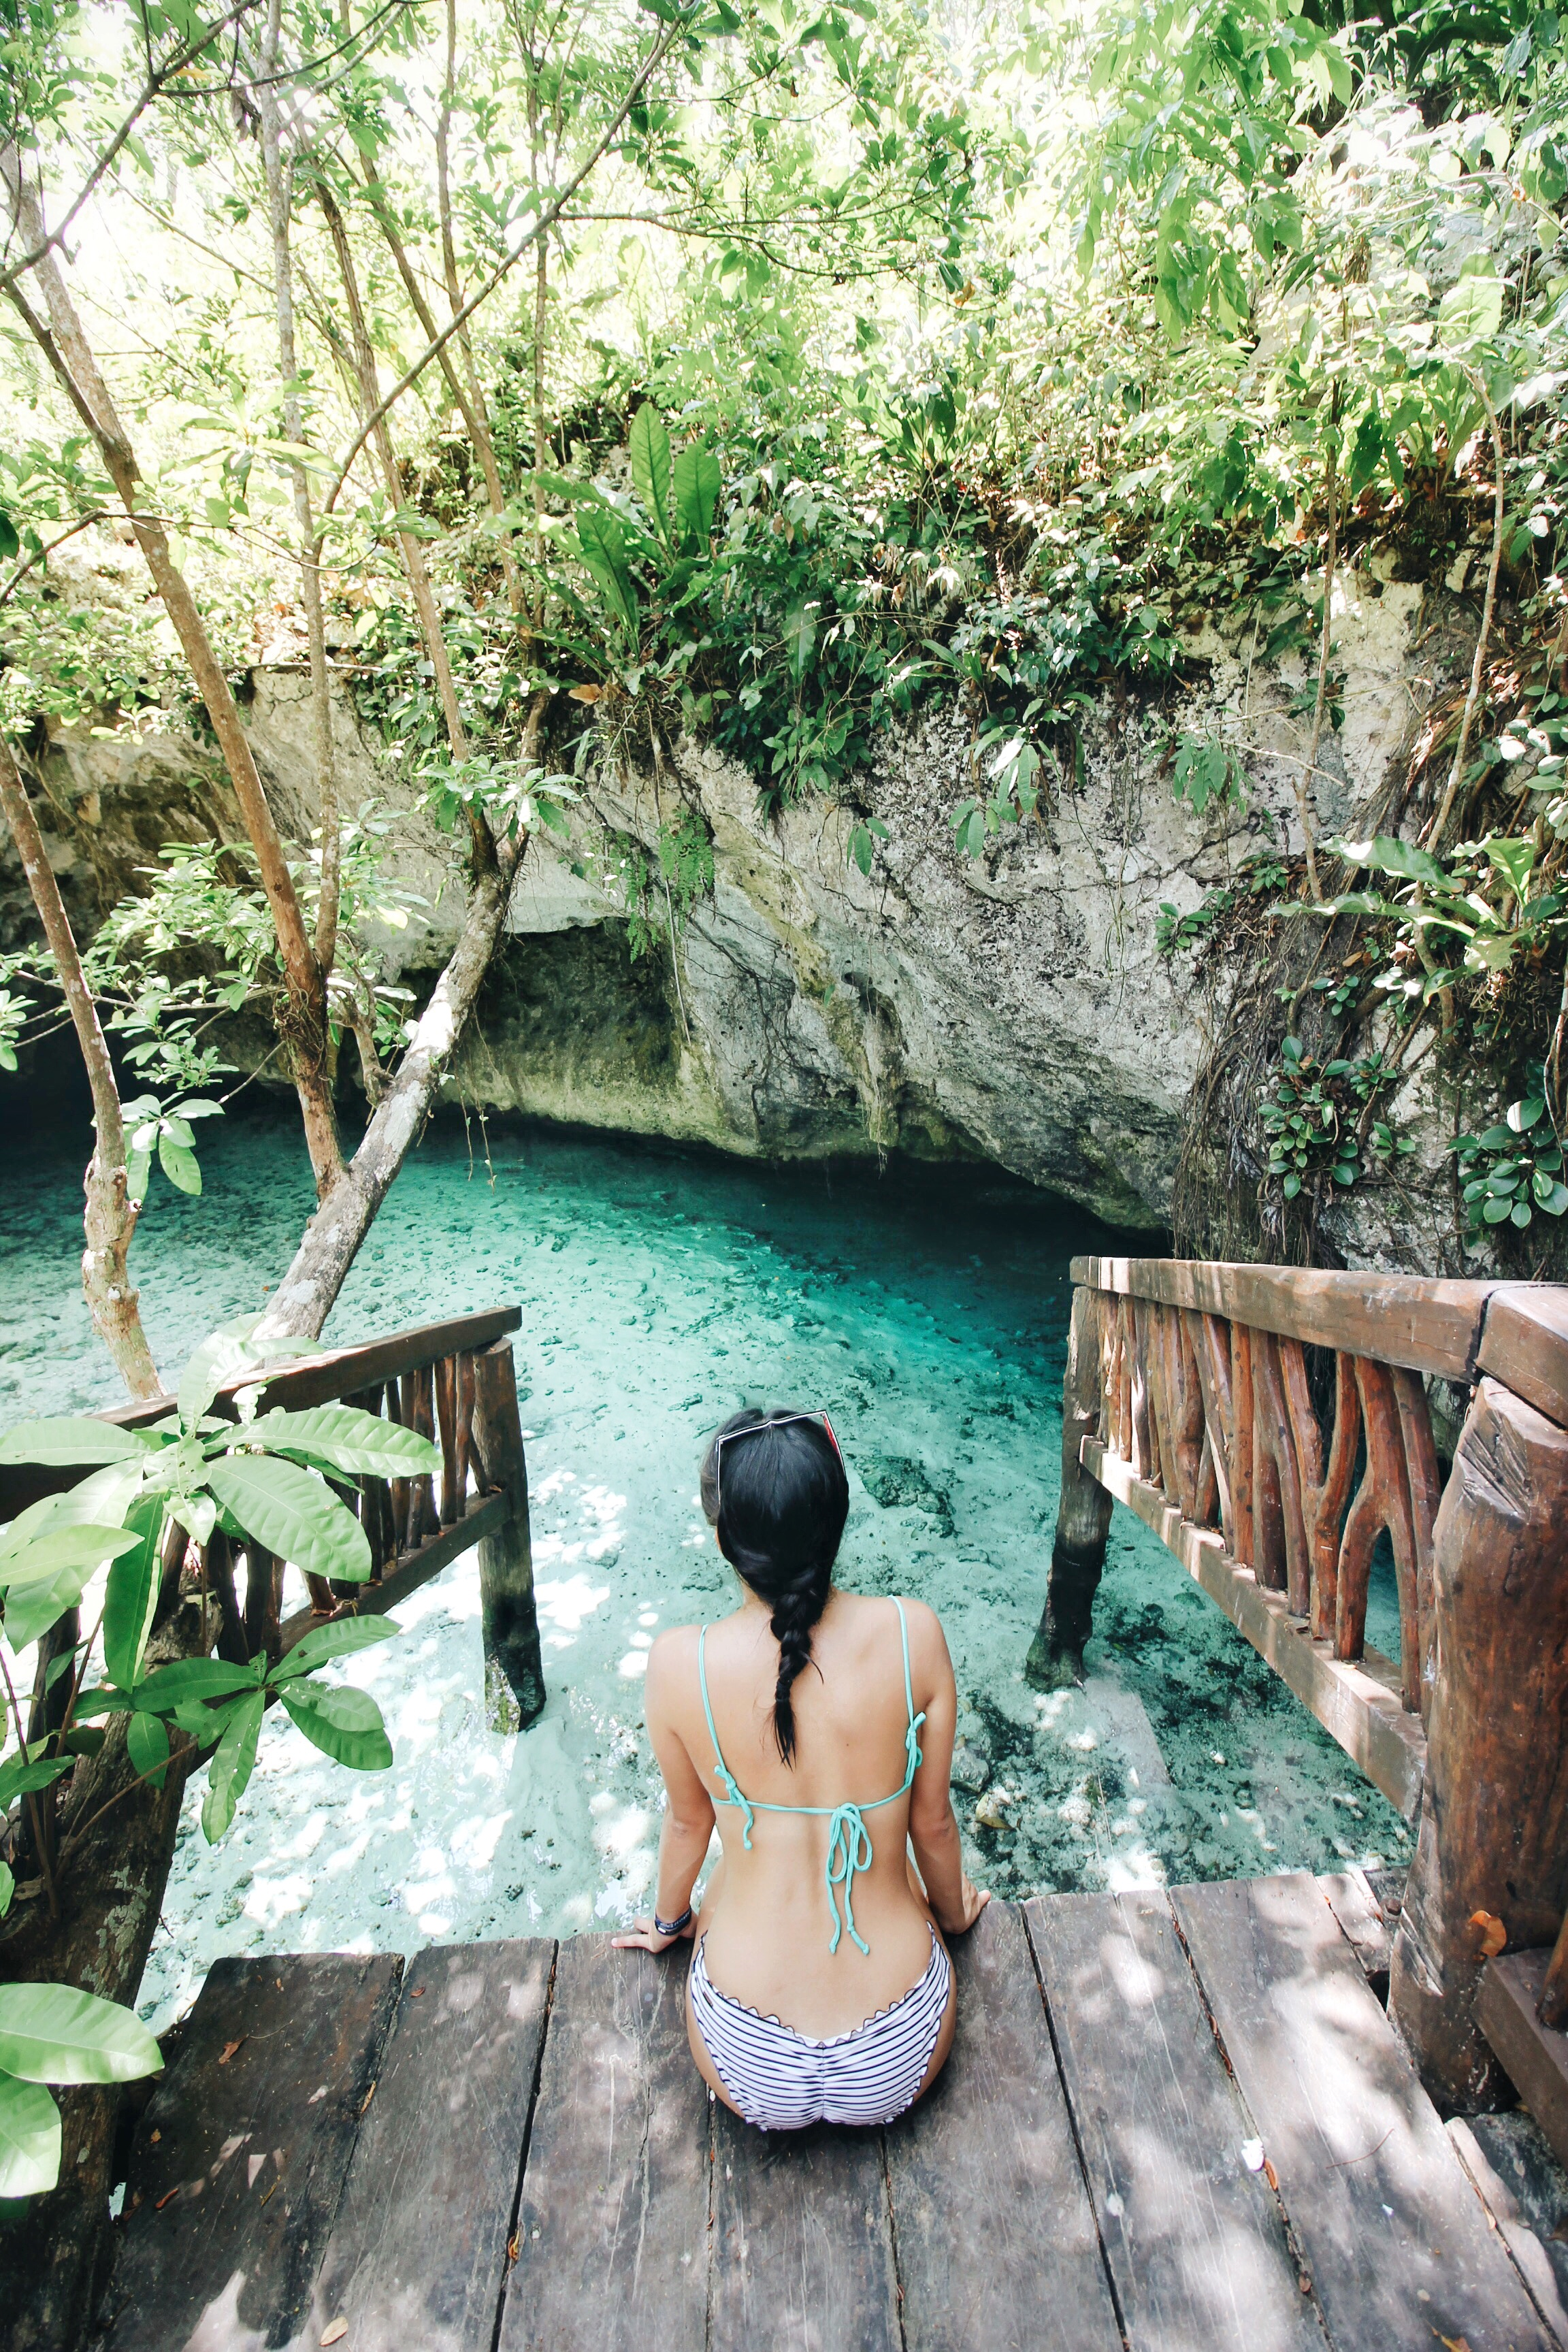 Pictured: Natalie in Gran Cenote, Tulum.